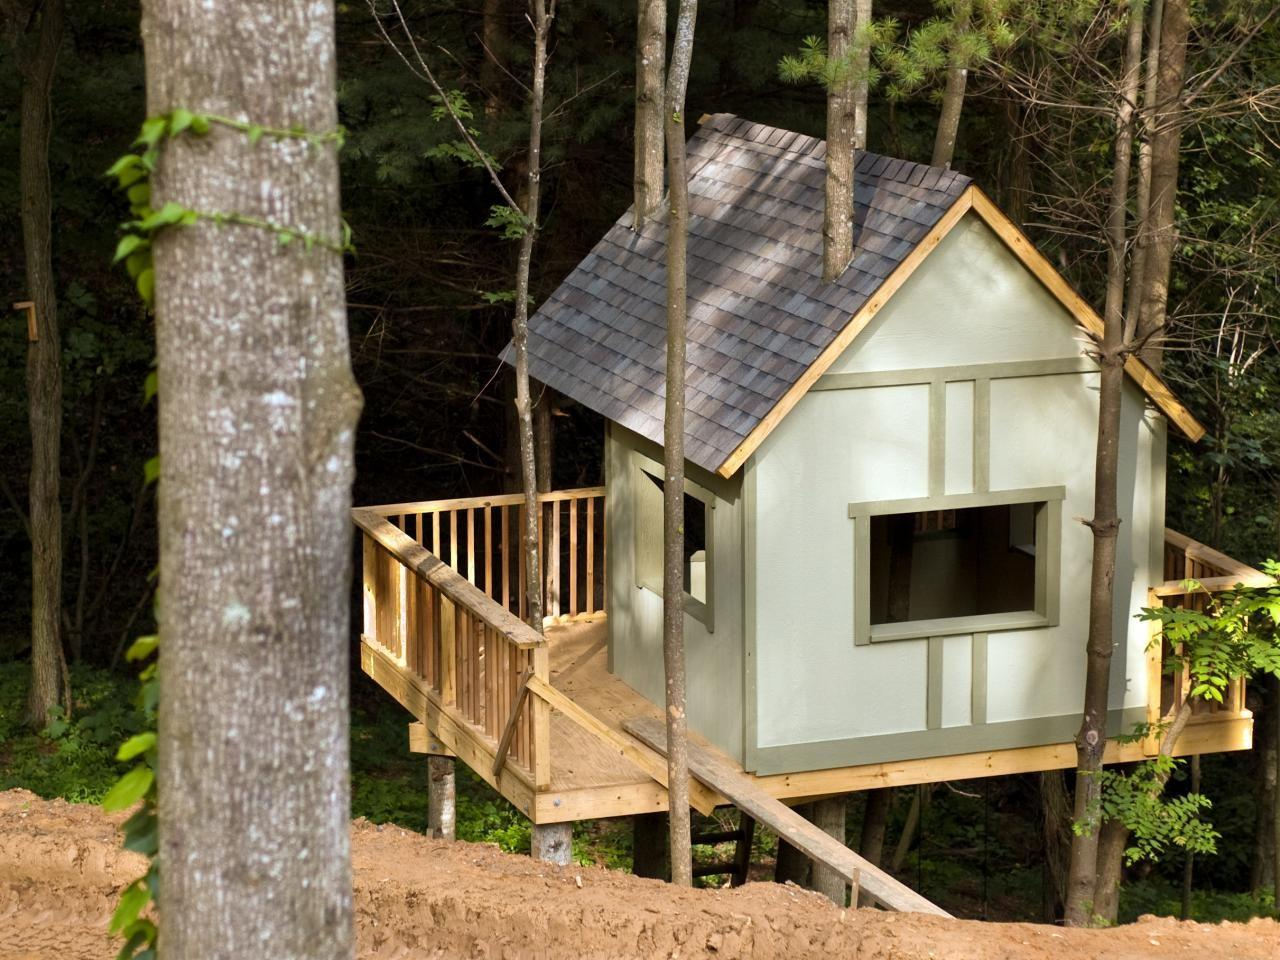 Treehouse Blog Cabin 2009 Diy Network